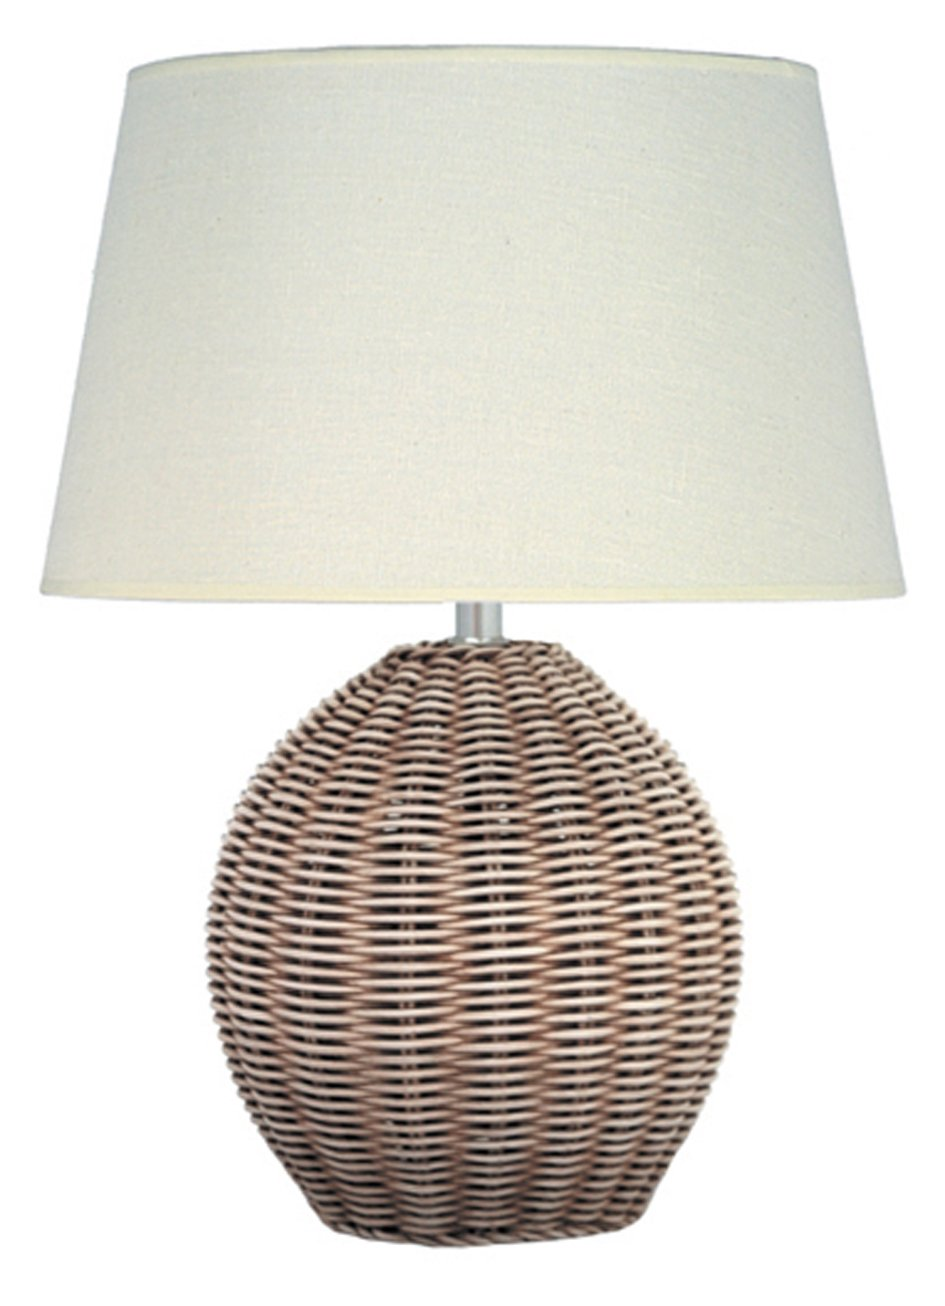 Pacific lighting 500 rattan cream wash table lamp base only pacific lighting 500 rattan cream wash table lamp base only amazon kitchen home aloadofball Images